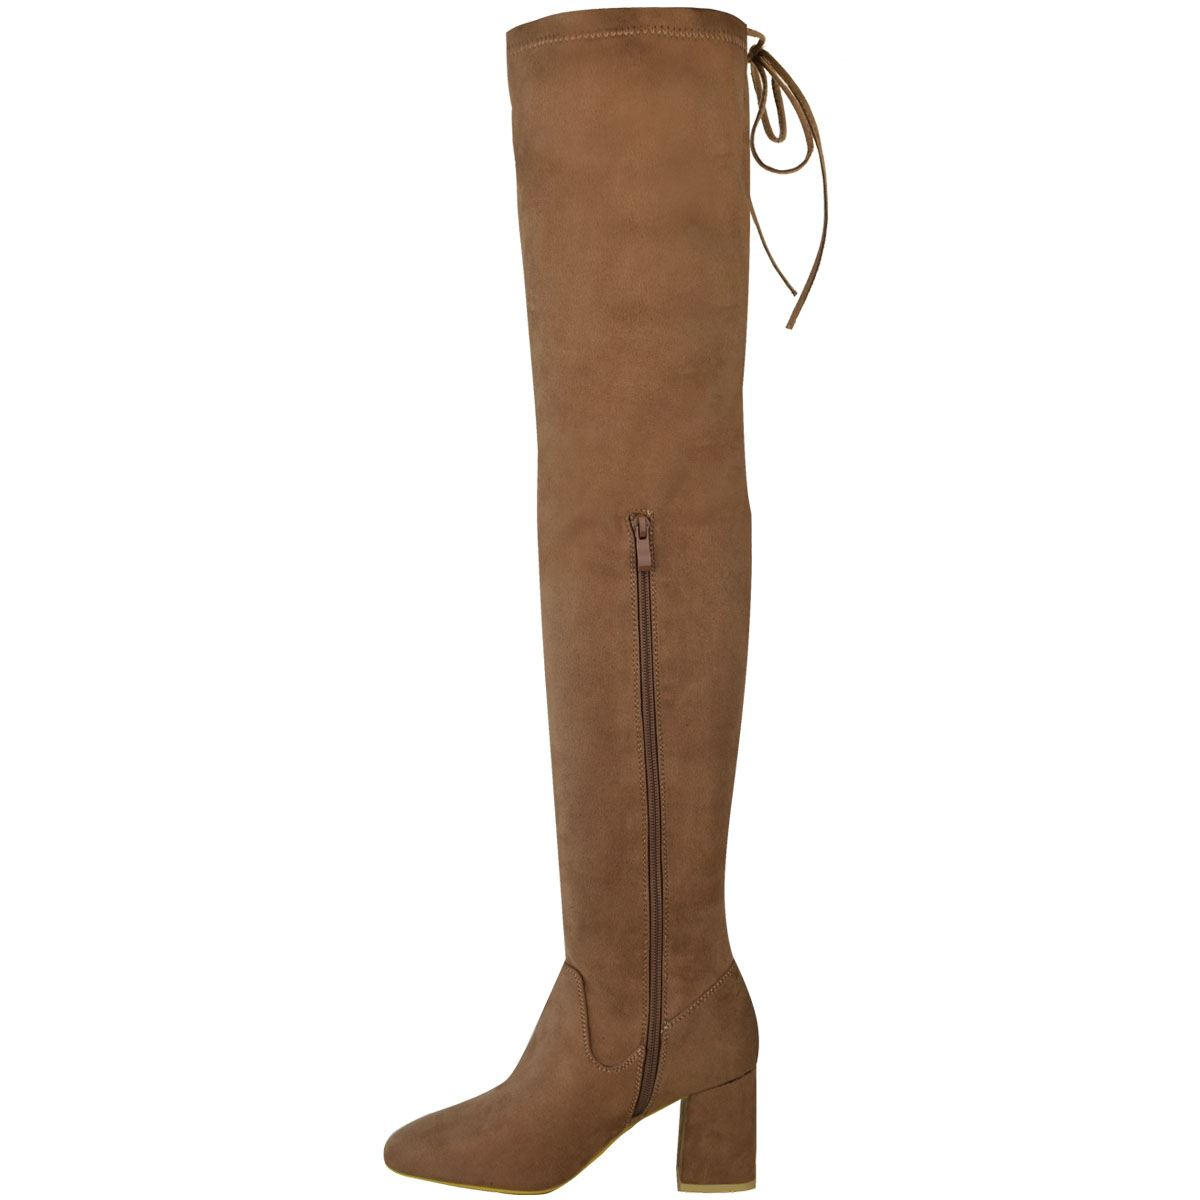 Womens Ladies Flat Thigh High Boots Over The Knee Long Length Shoes Casual Size